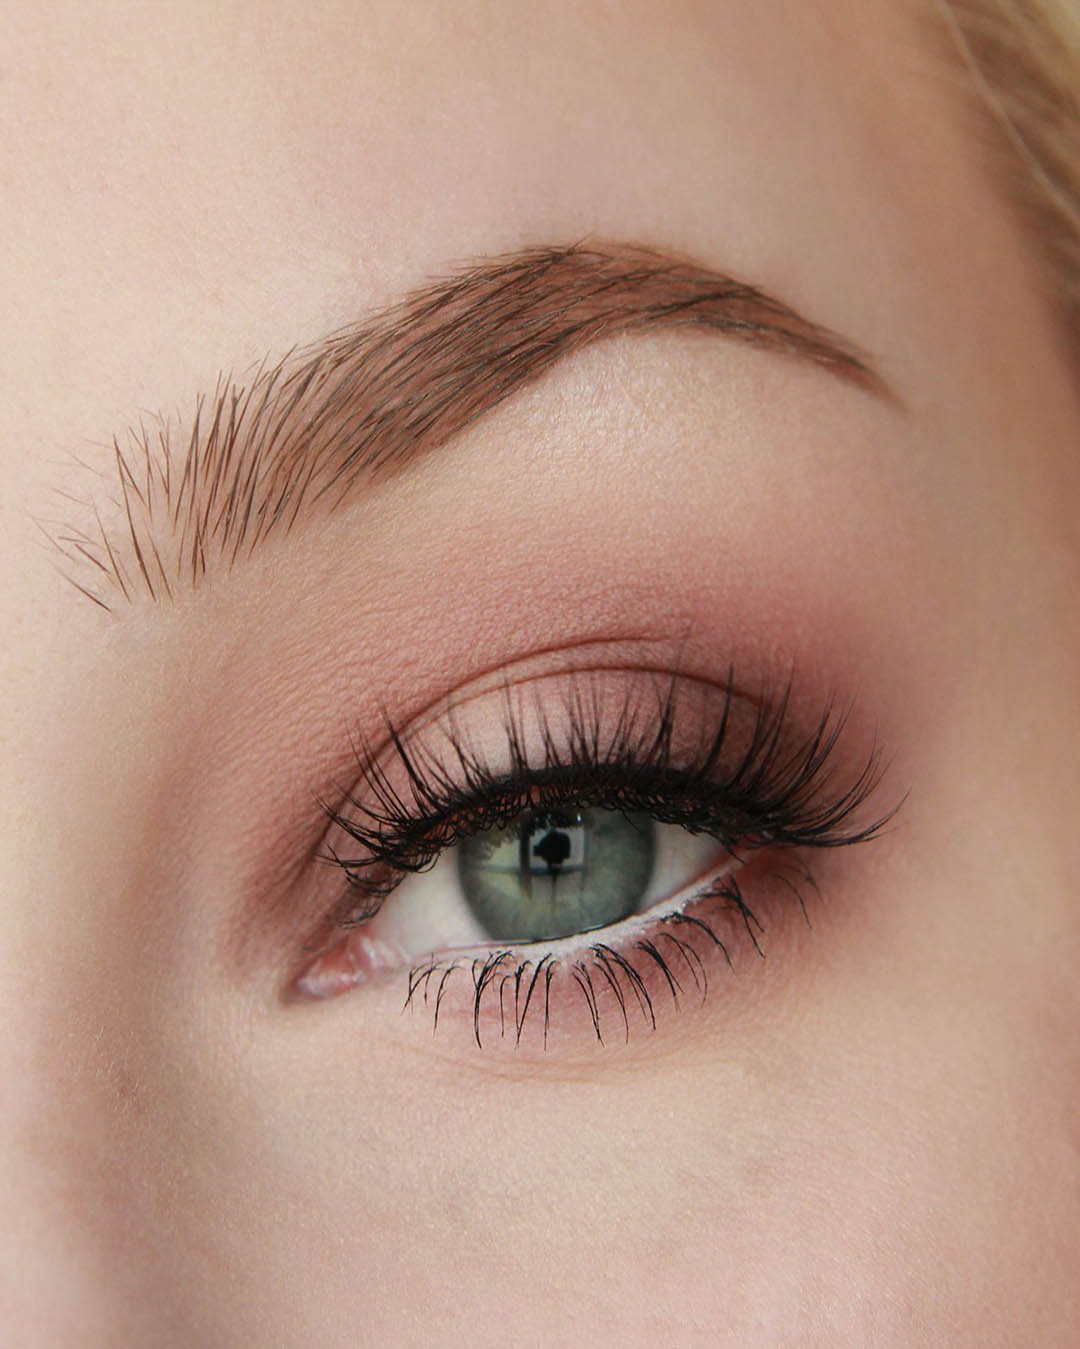 Easy natural eye designs ideas to look angelic - Girlcheck